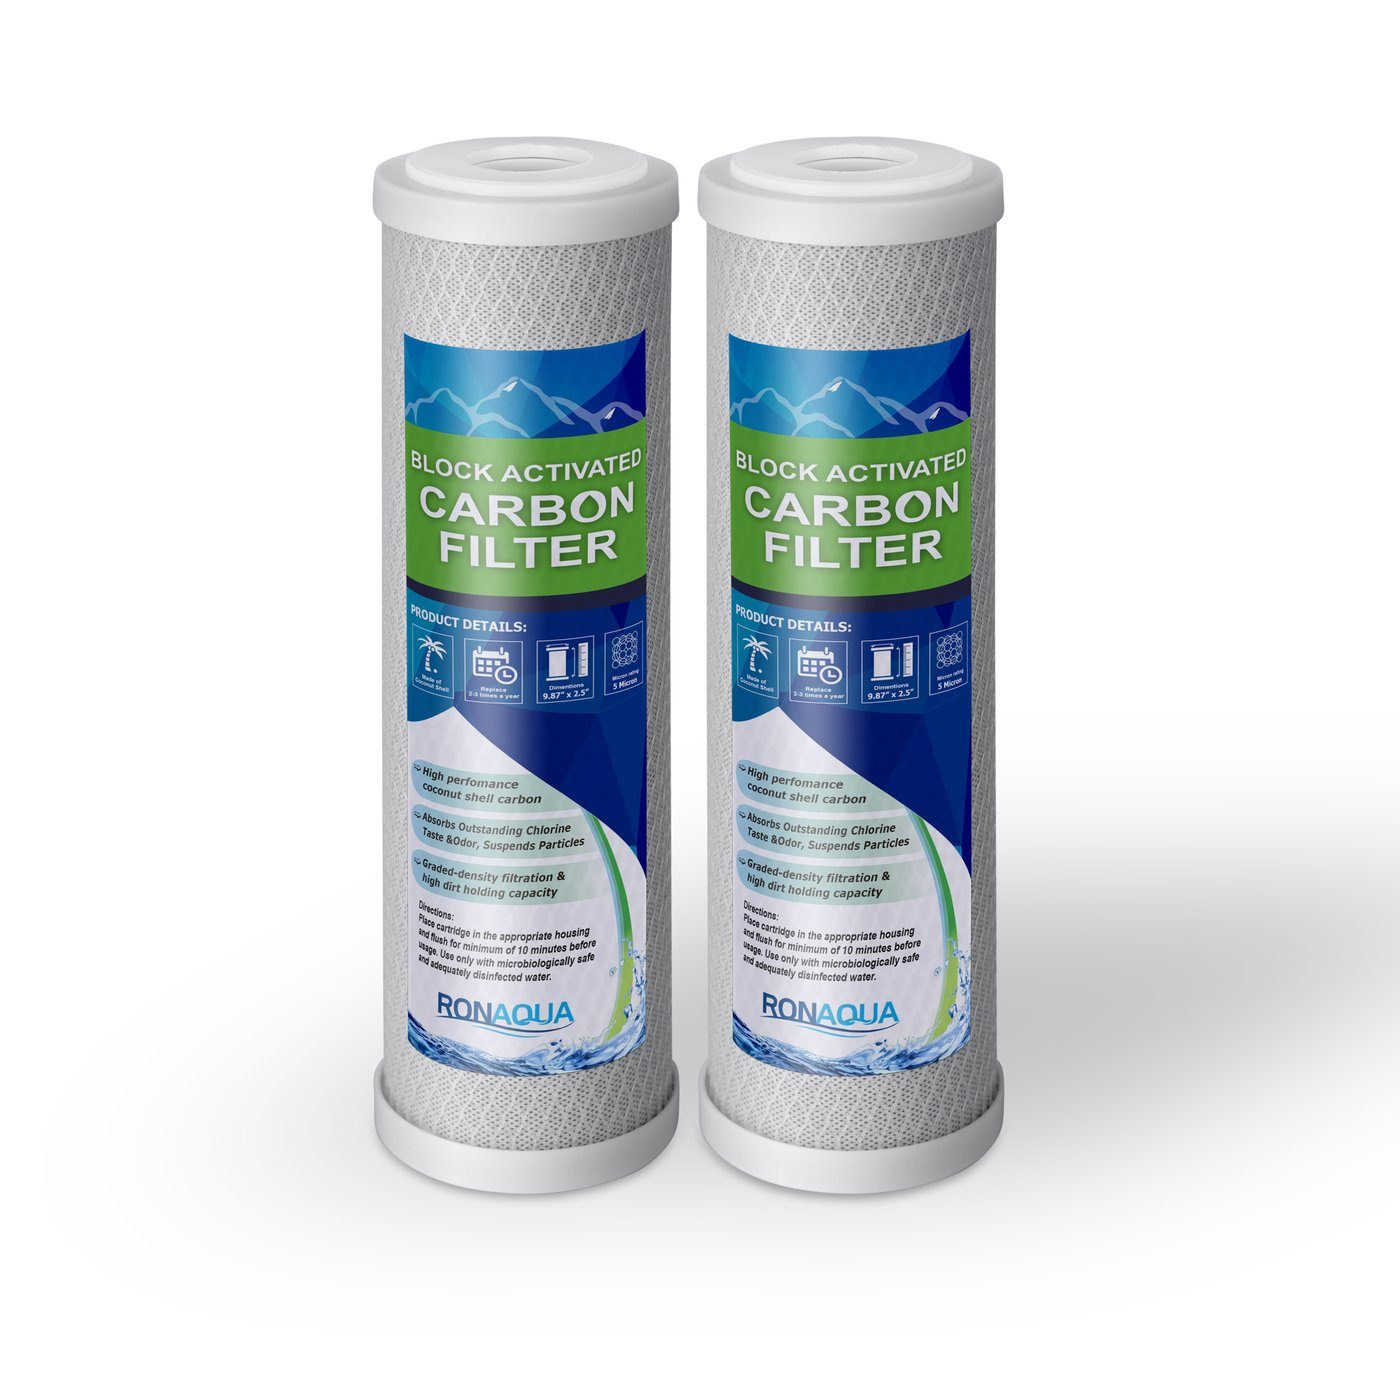 10 Inch 5 Micron Activated Carbon Block Water Filter Cartridge | Ronaqua